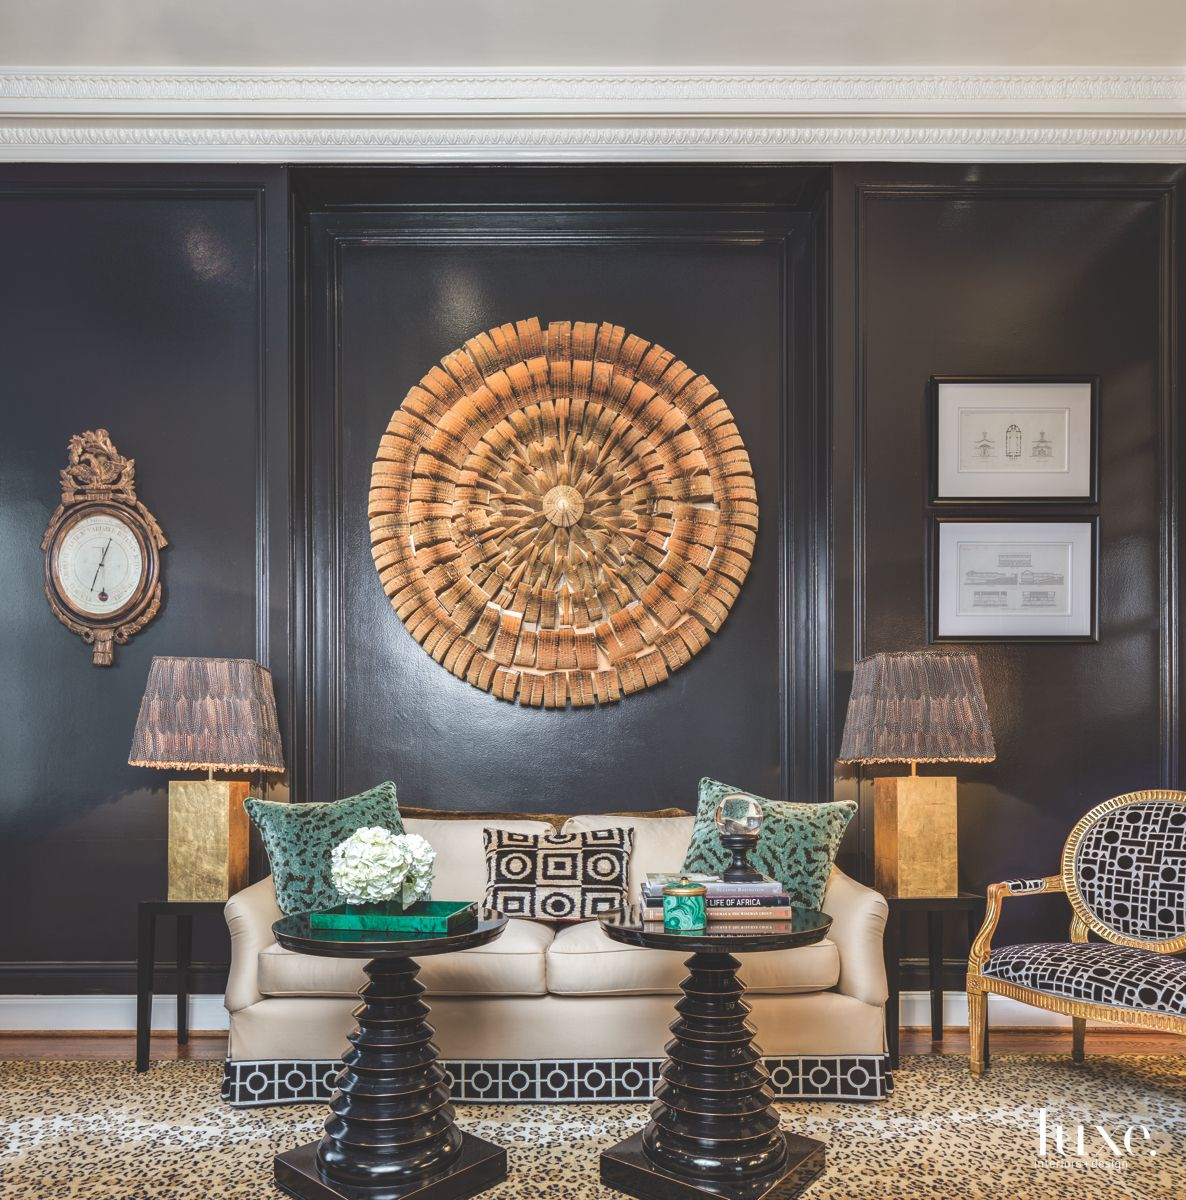 Black Walls & Art Make A Statement in This San Francisco Dining Room